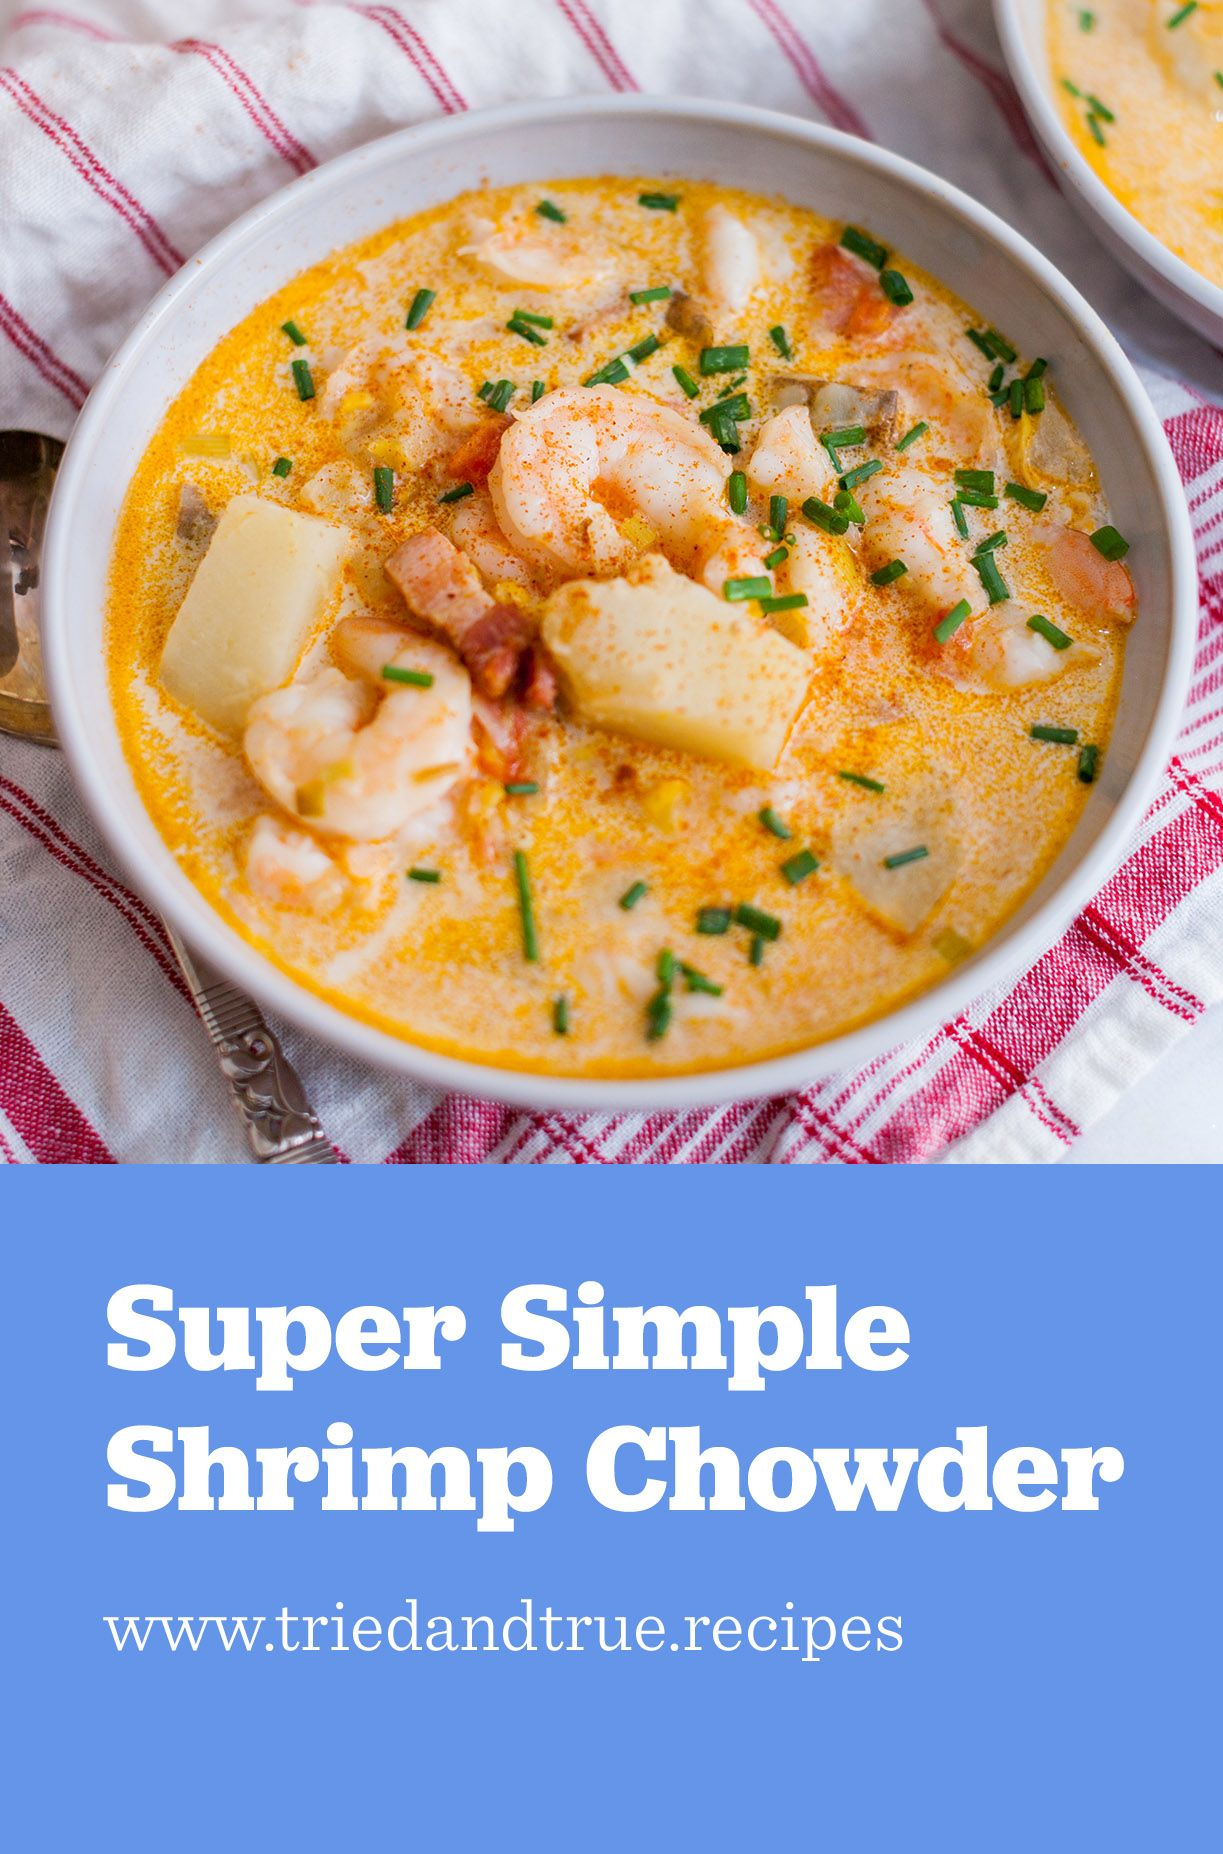 This Chowder Is Brimming With Shrimp I Highly Recommend Taking An